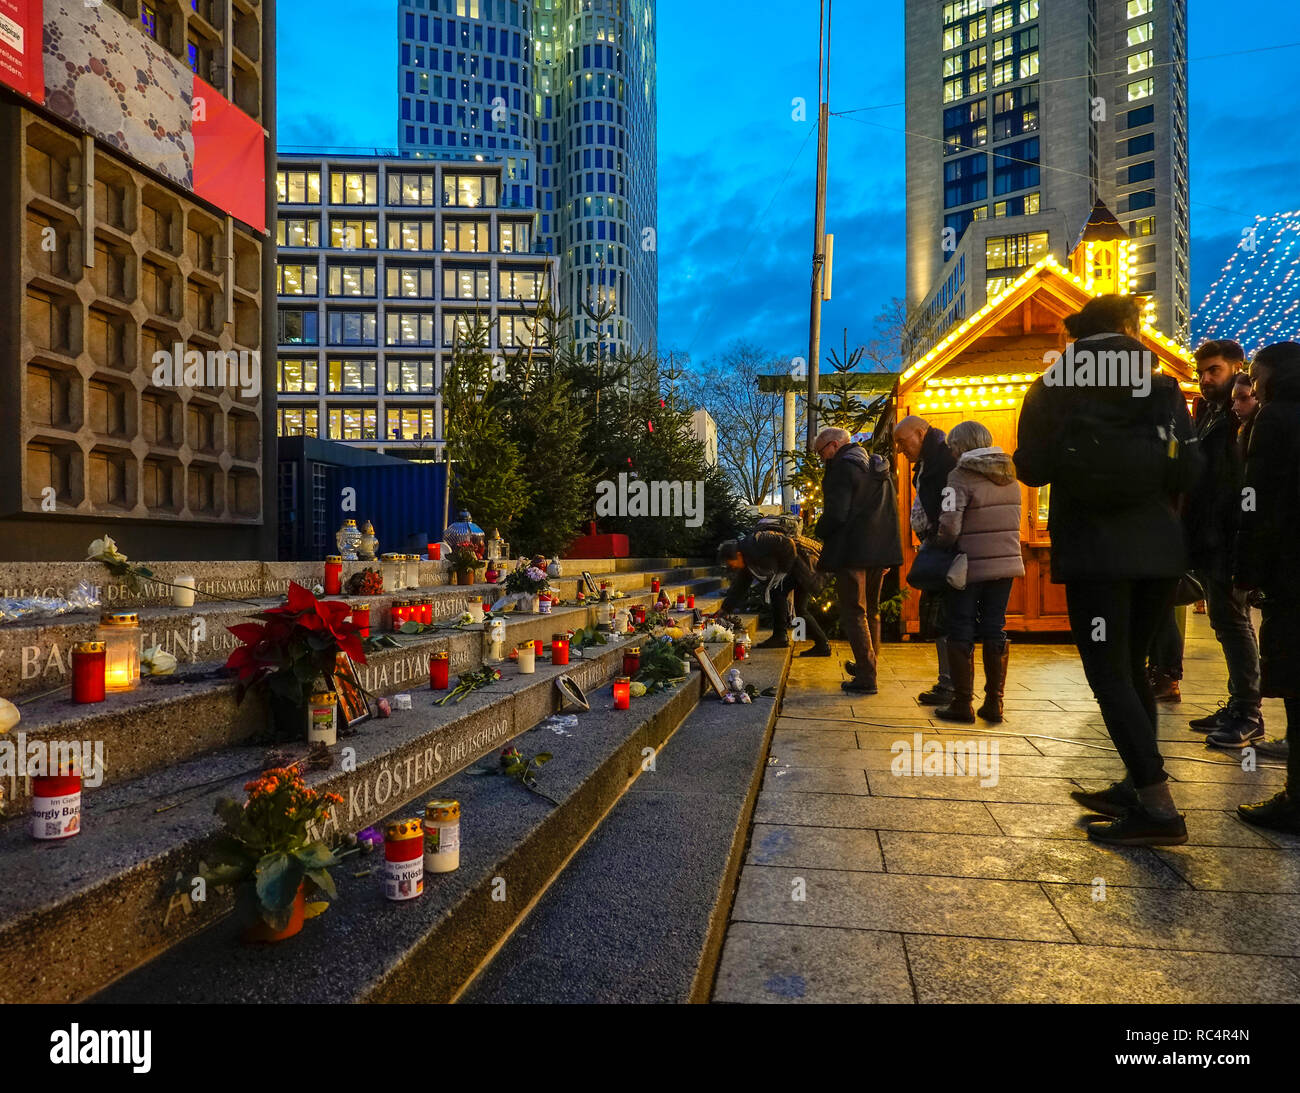 https://c7.alamy.com/comp/RC4R4N/berlin-breitscheidplatz-memorial-at-christmas-market-berlin-city-weihnachtsmarkt-for-the12-victims-of-2016-terror-attack-visitors-lighting-candles-RC4R4N.jpg